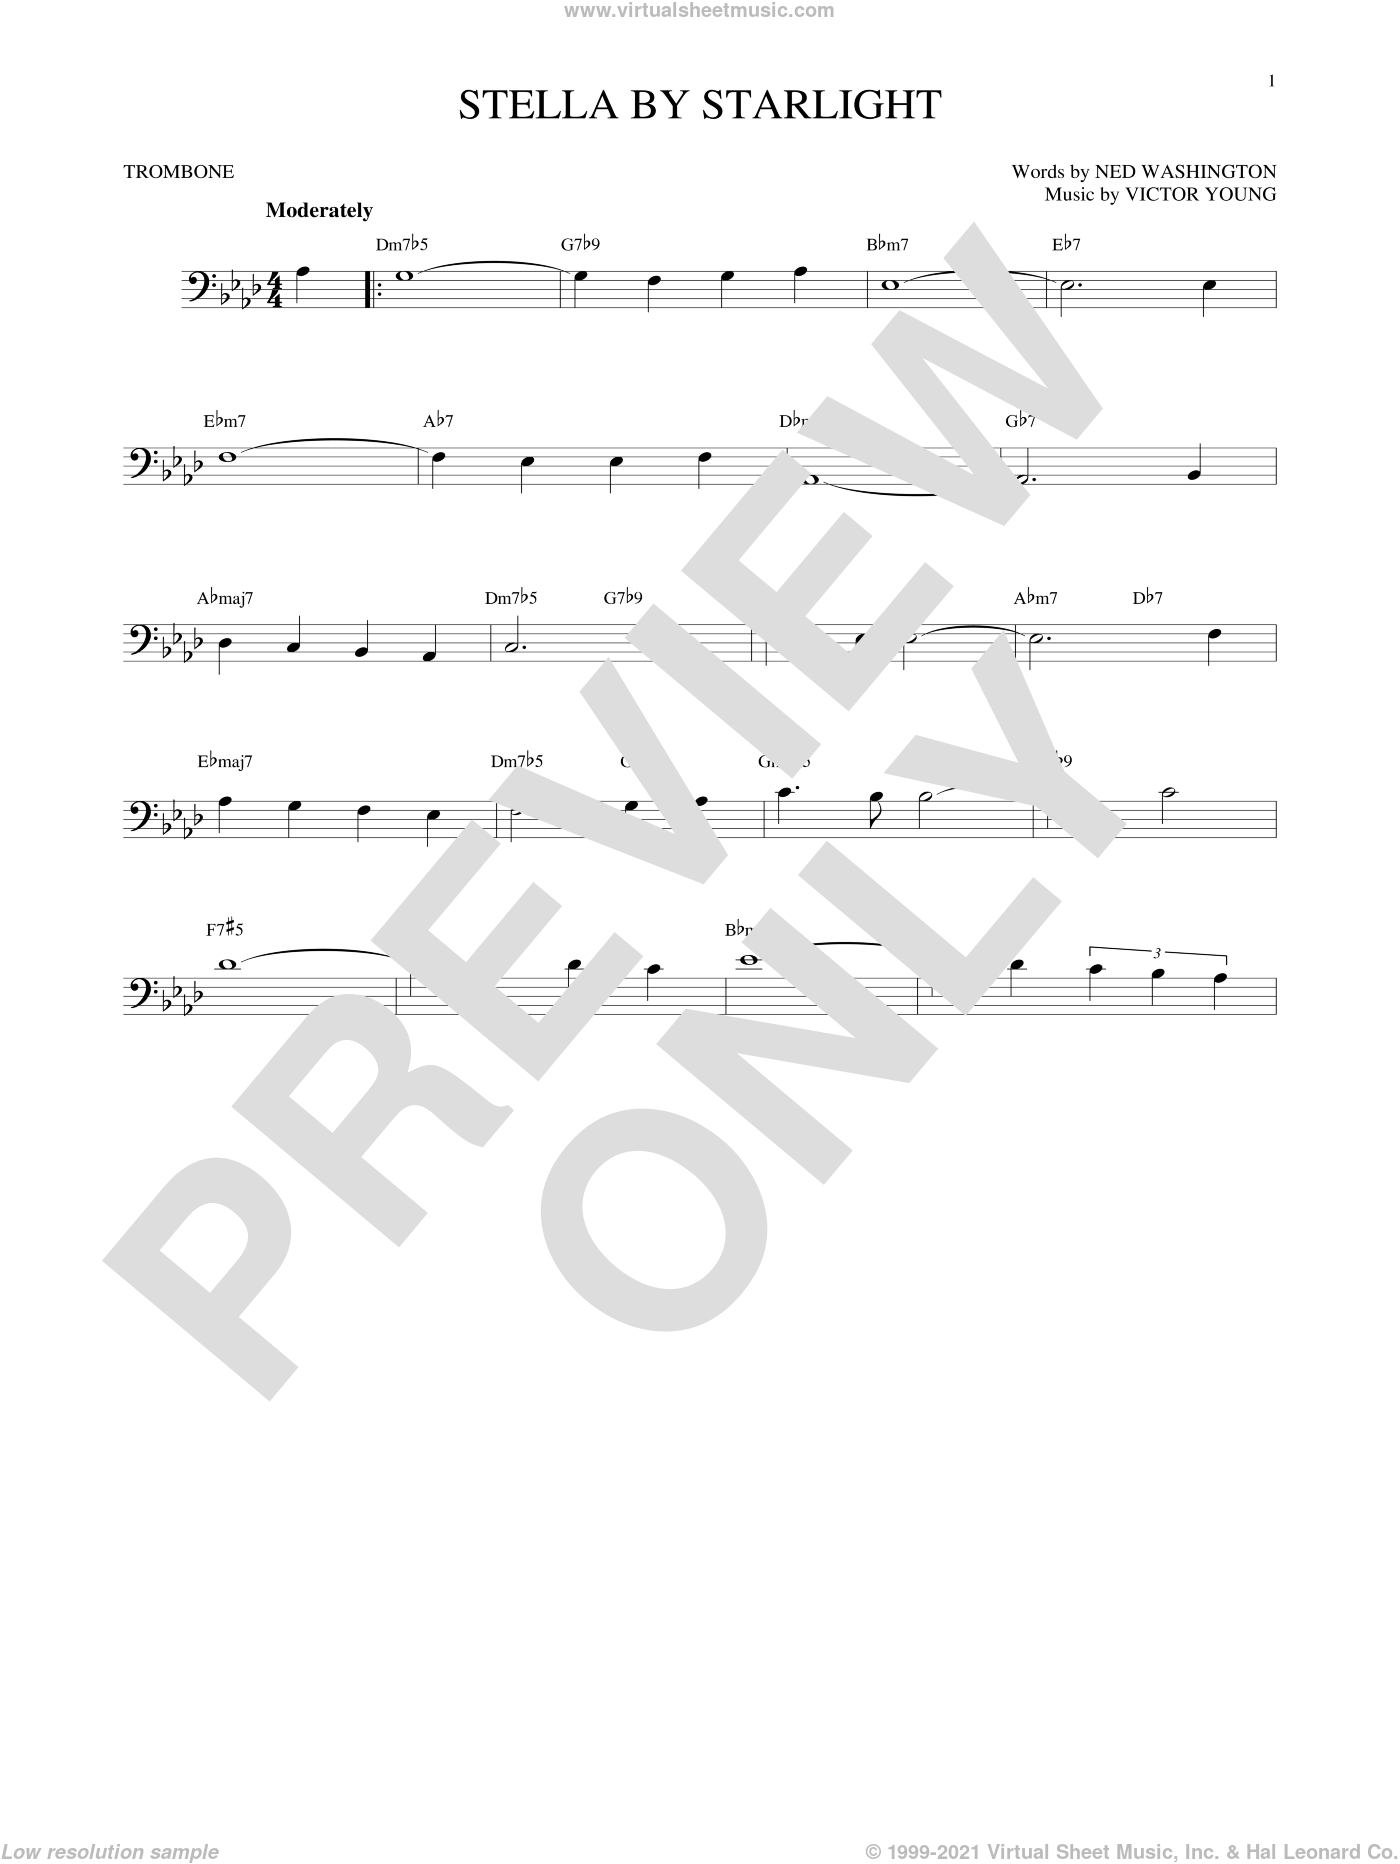 Stella By Starlight sheet music for trombone solo by Ned Washington, Ray Charles and Victor Young, intermediate skill level